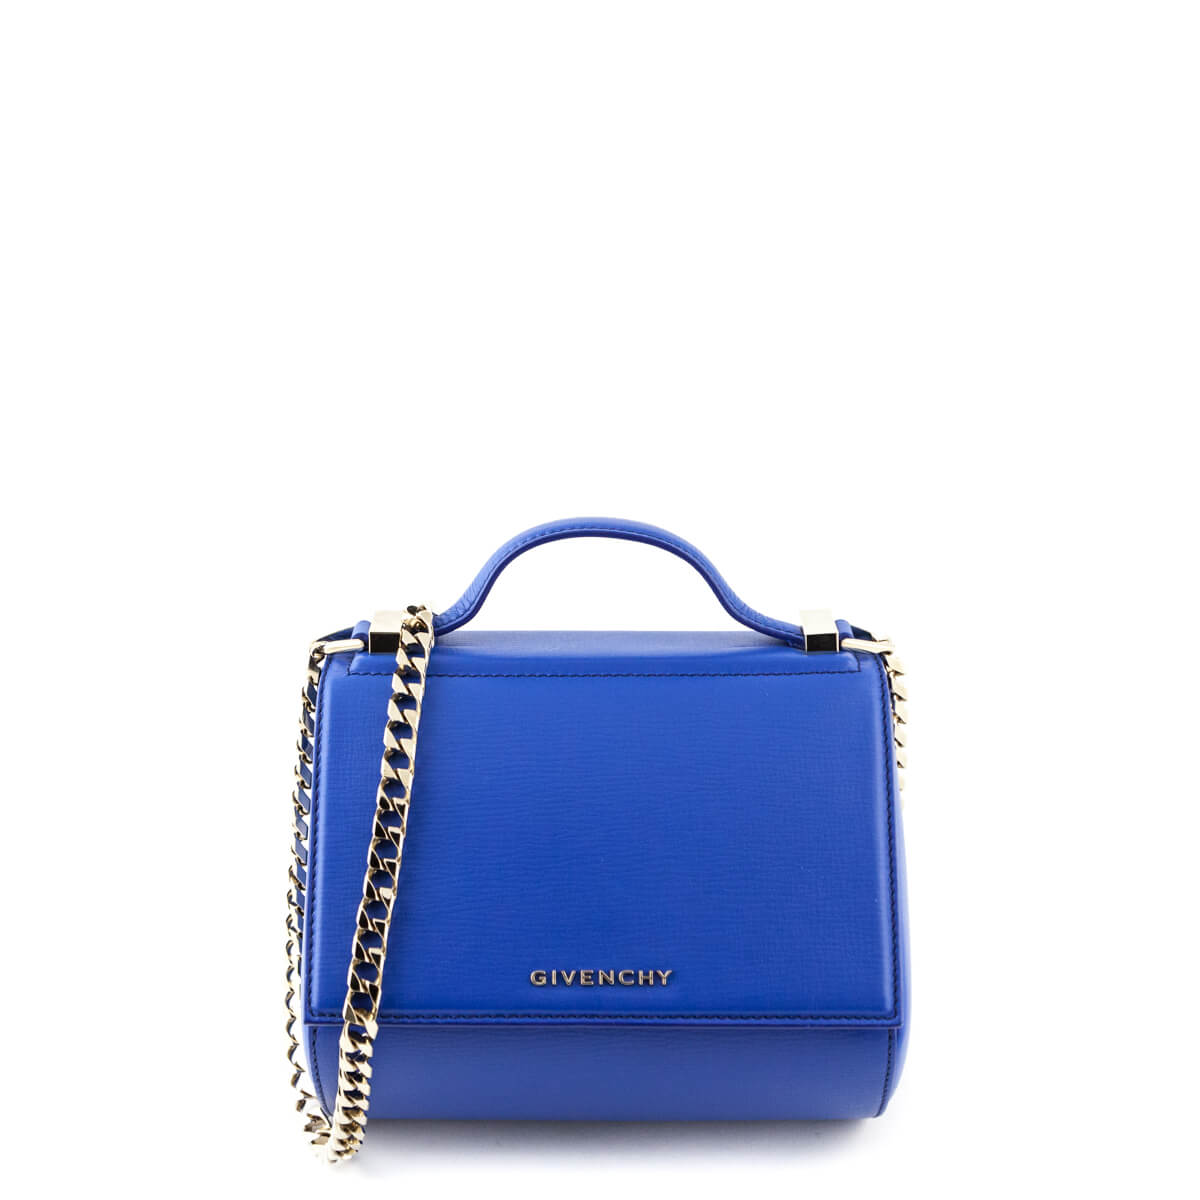 64041bd9695b Givenchy Indigo Blue Calfskin Mini Pandora Box Shoulder Bag - LOVE that BAG  - Preowned Authentic ...